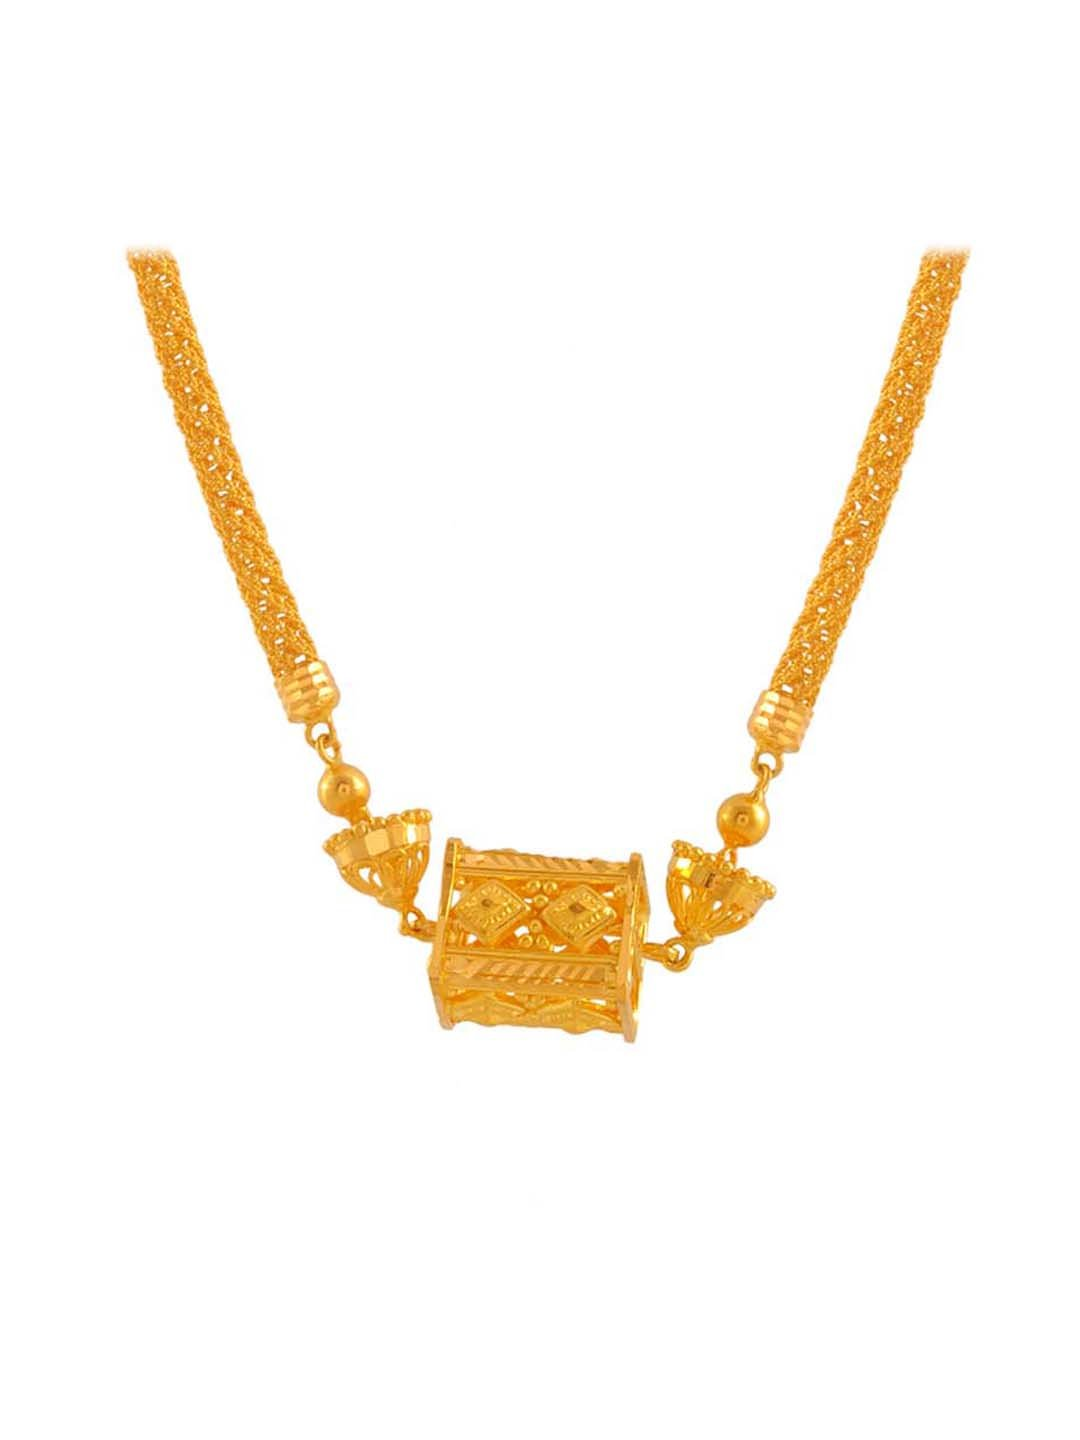 Buy P C Chandra 22 Kt Gold Necklace Online At Best Price Tata Cliq